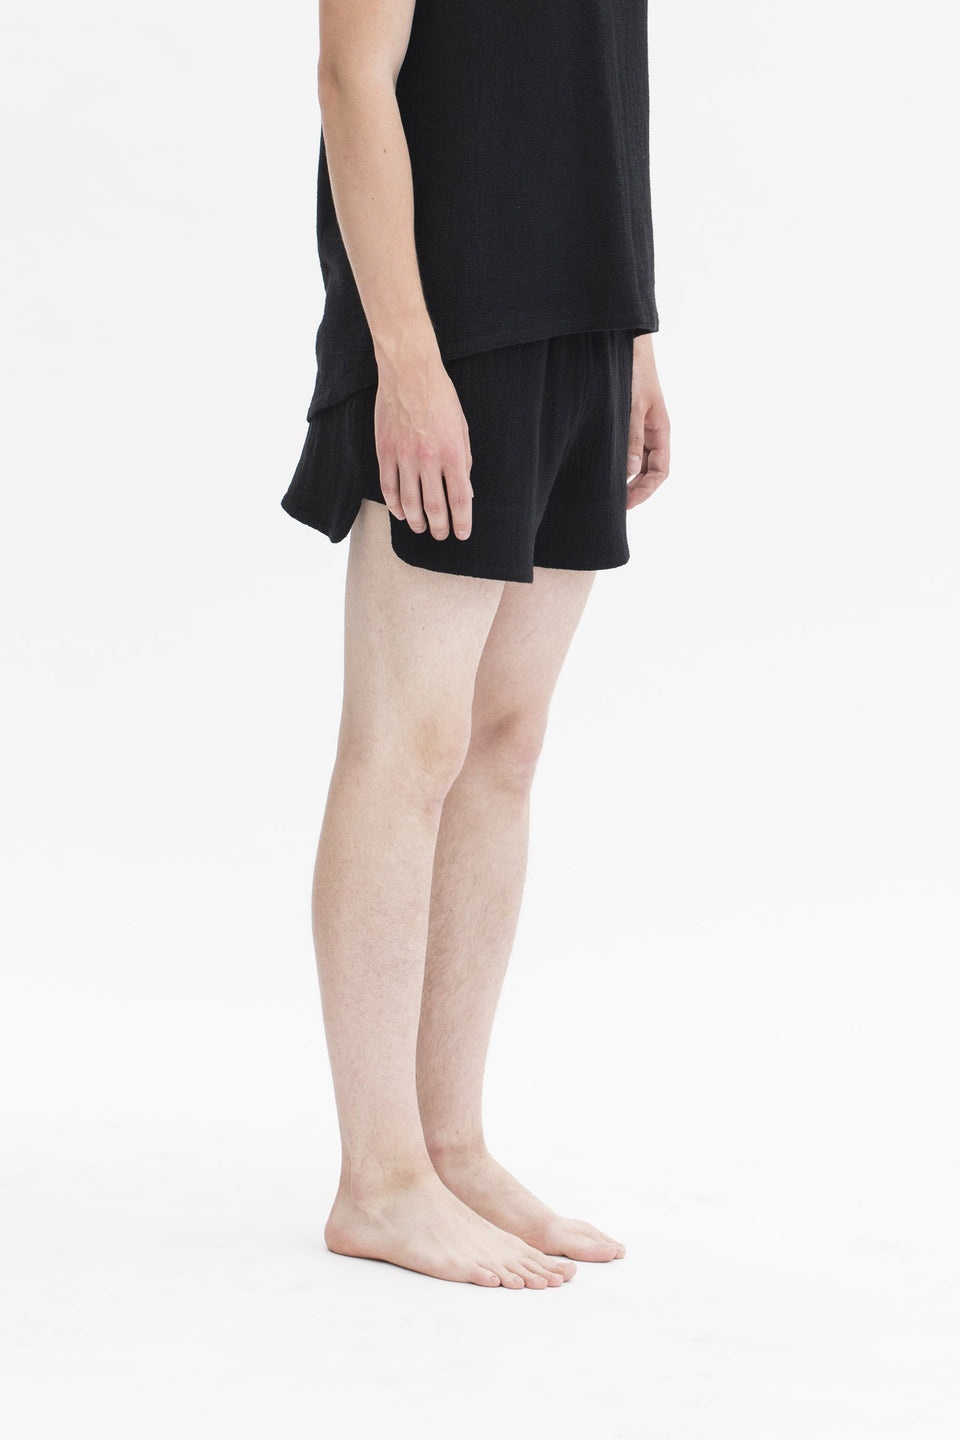 RAW Men Running Shorts Black (Sample) S-M